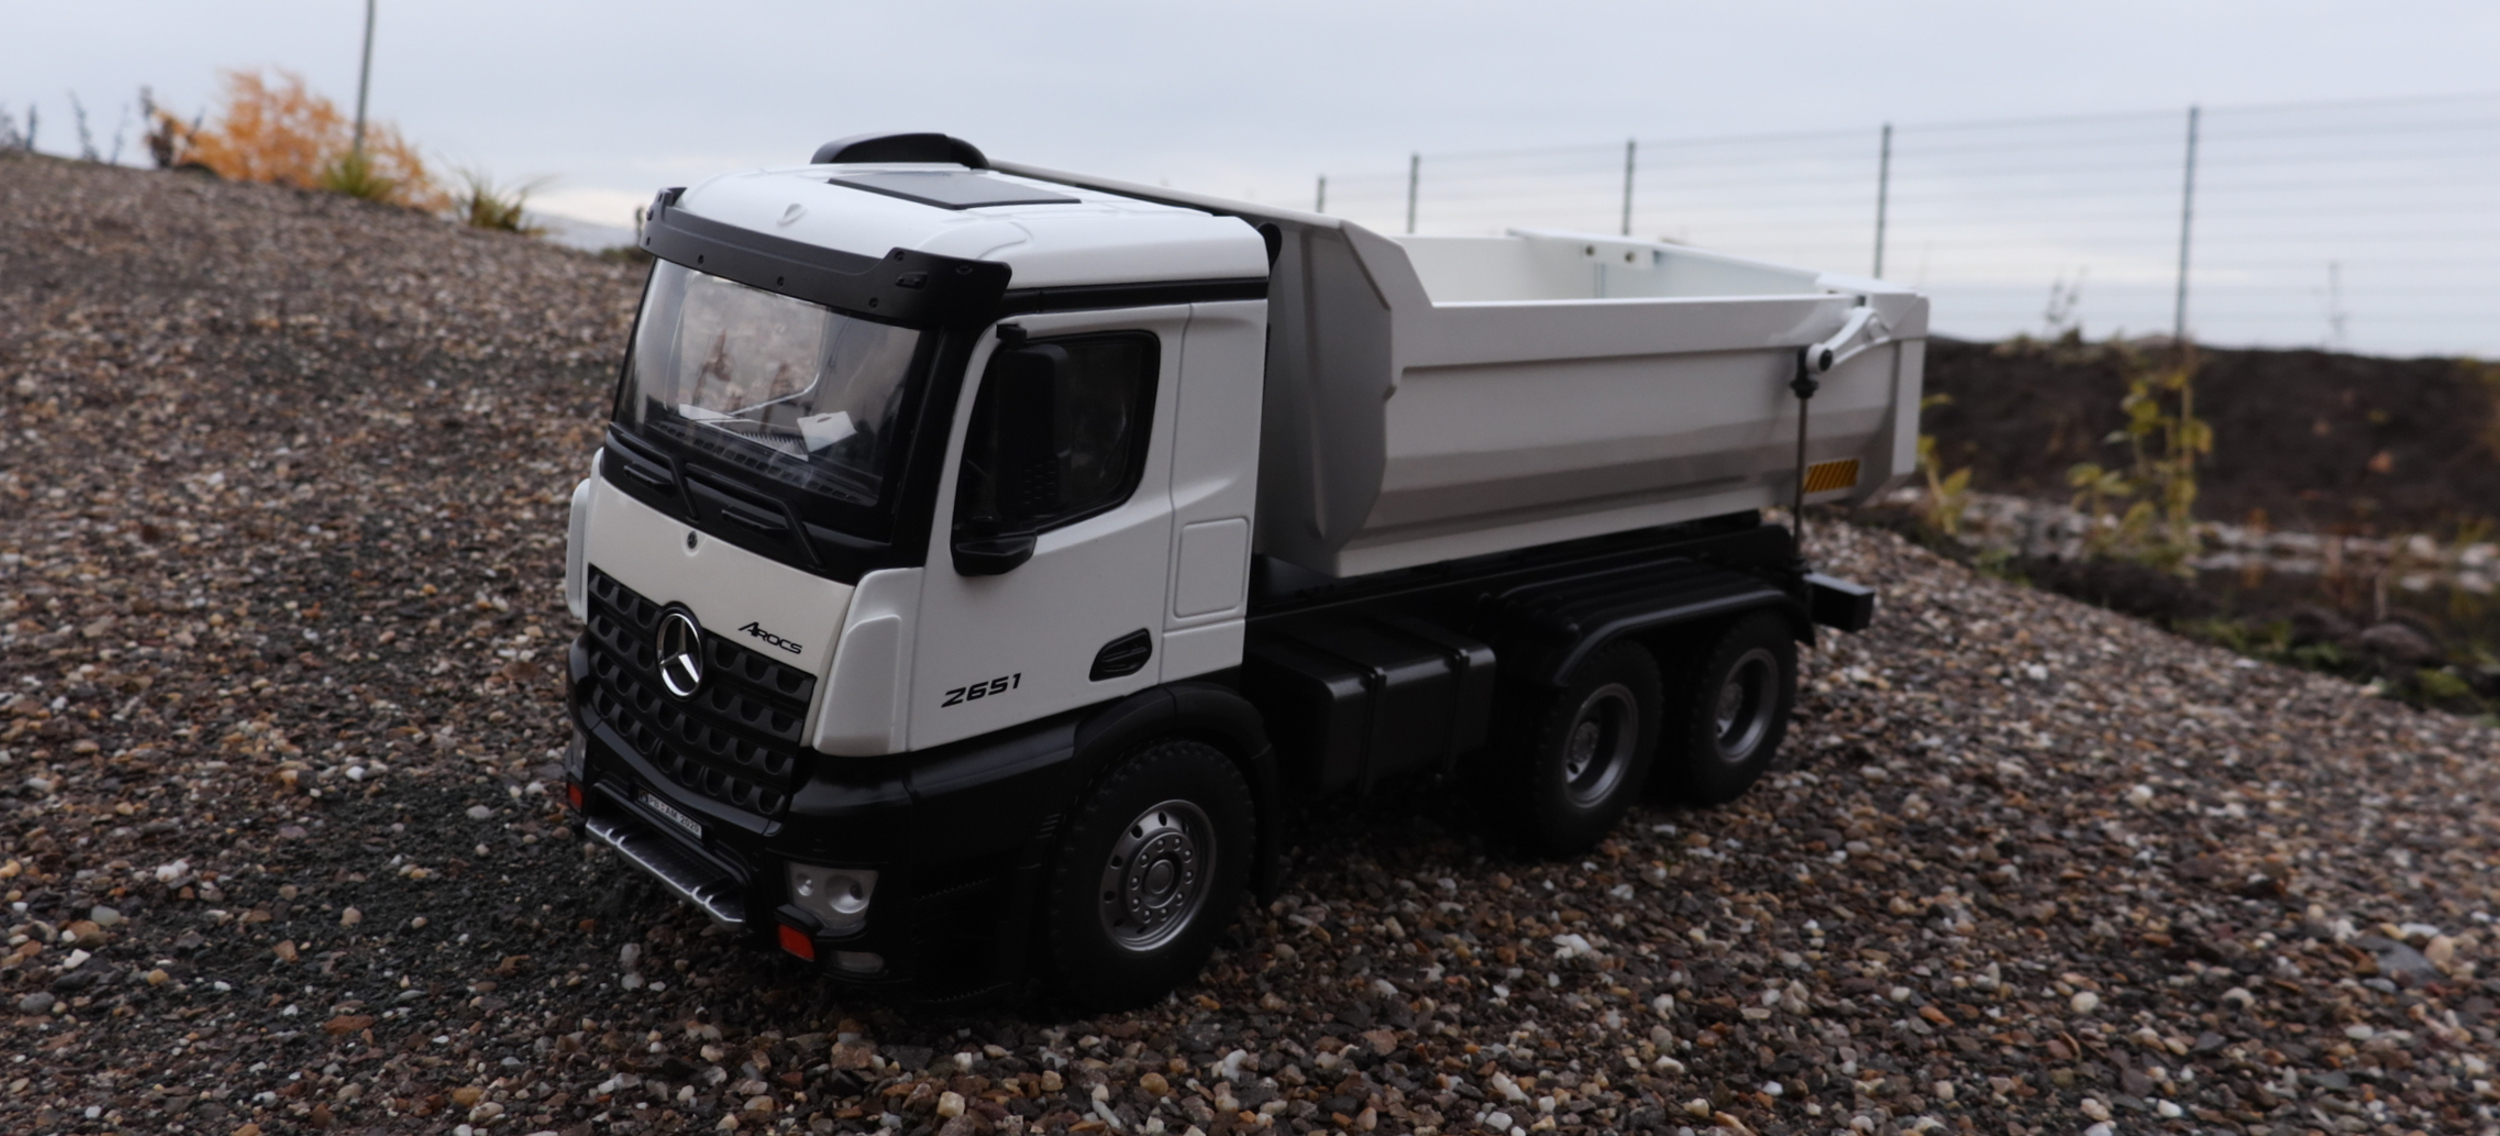 Mercedes-Benz Arocs LKW Kipper - 22413